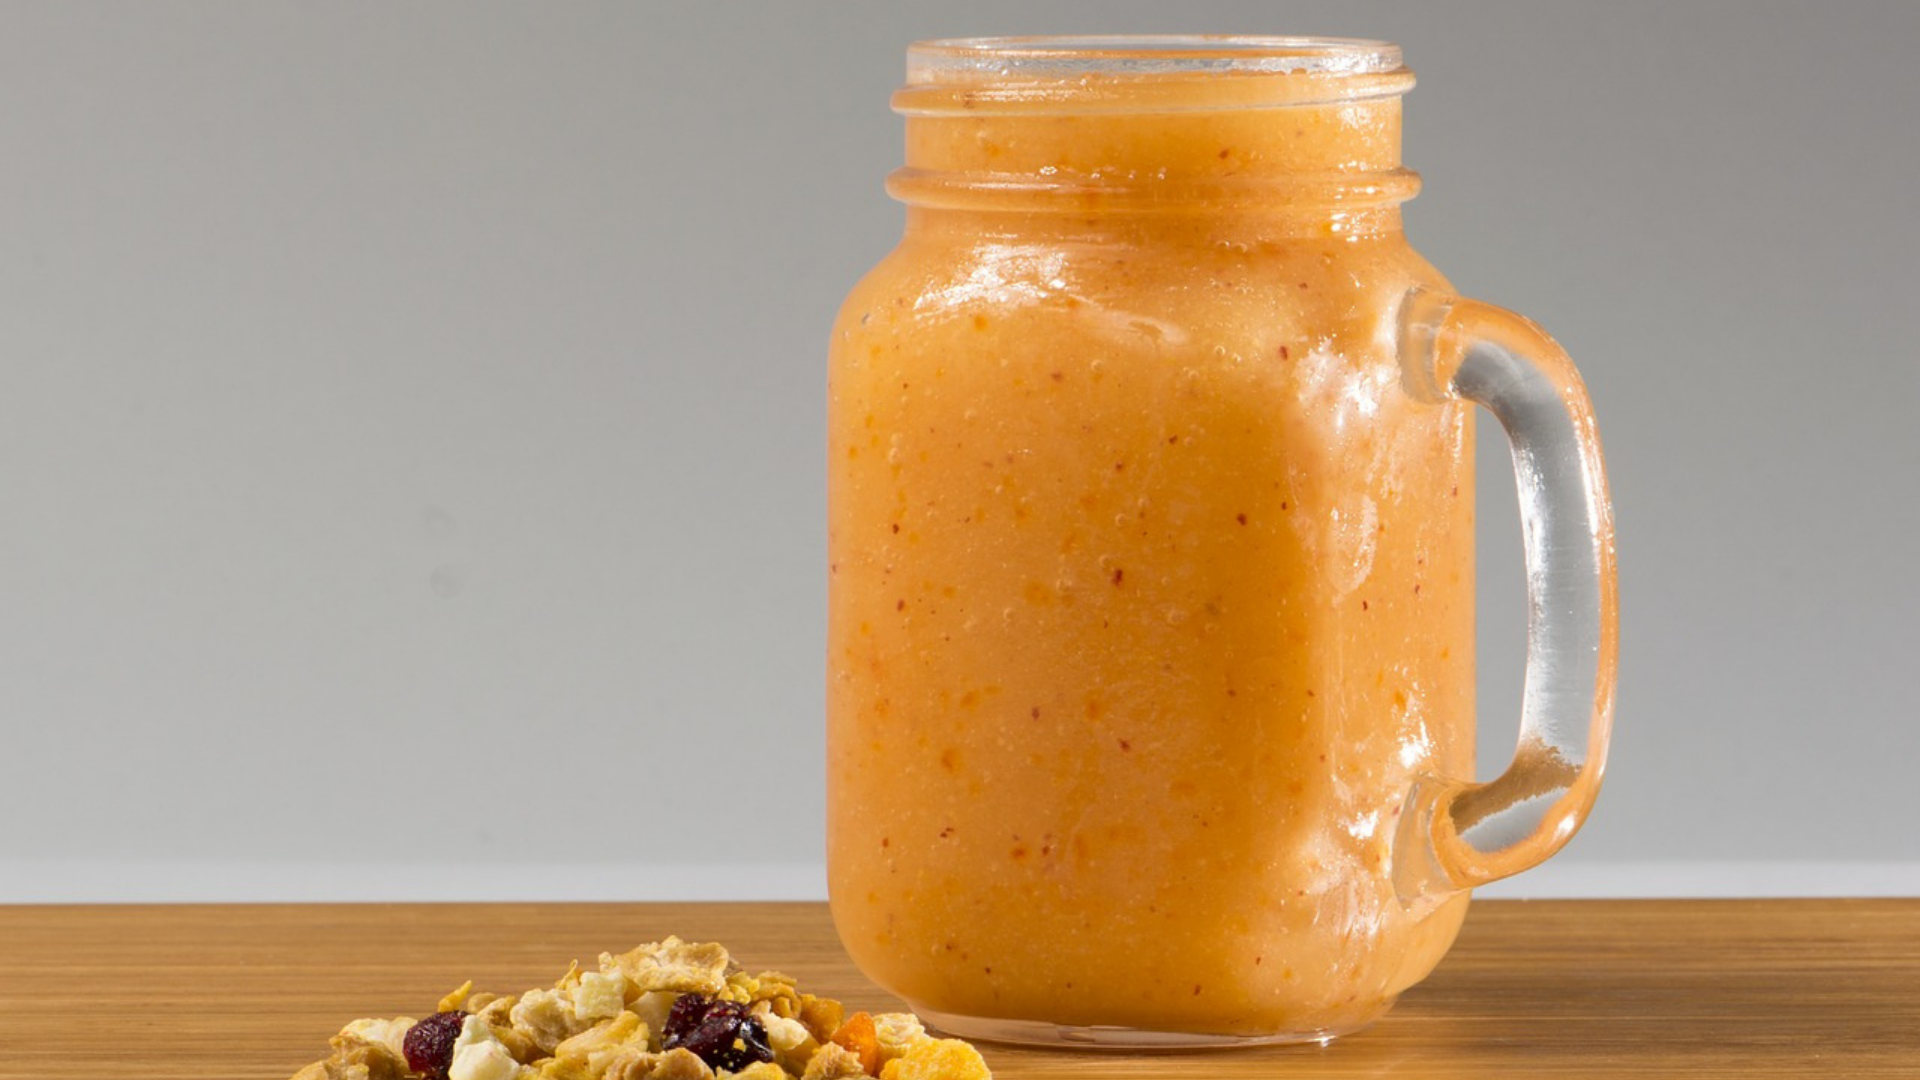 Zingy Pineapple Smoothie